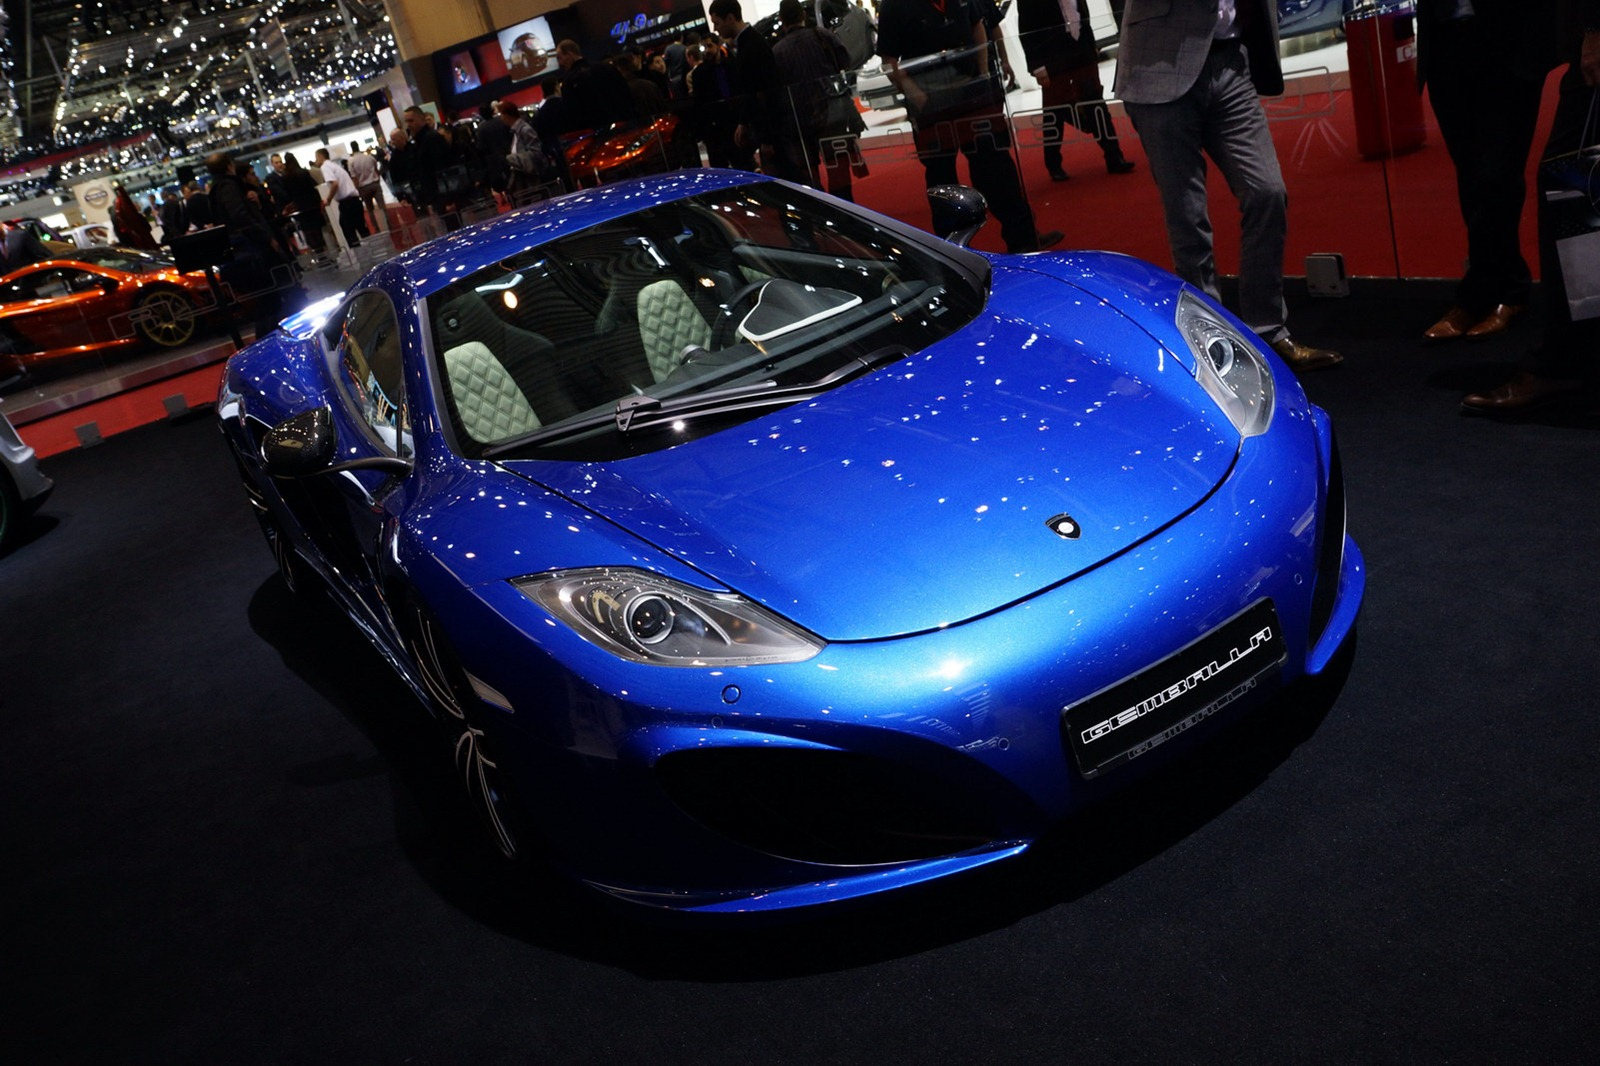 McLaren MP4-12C by Gemballa